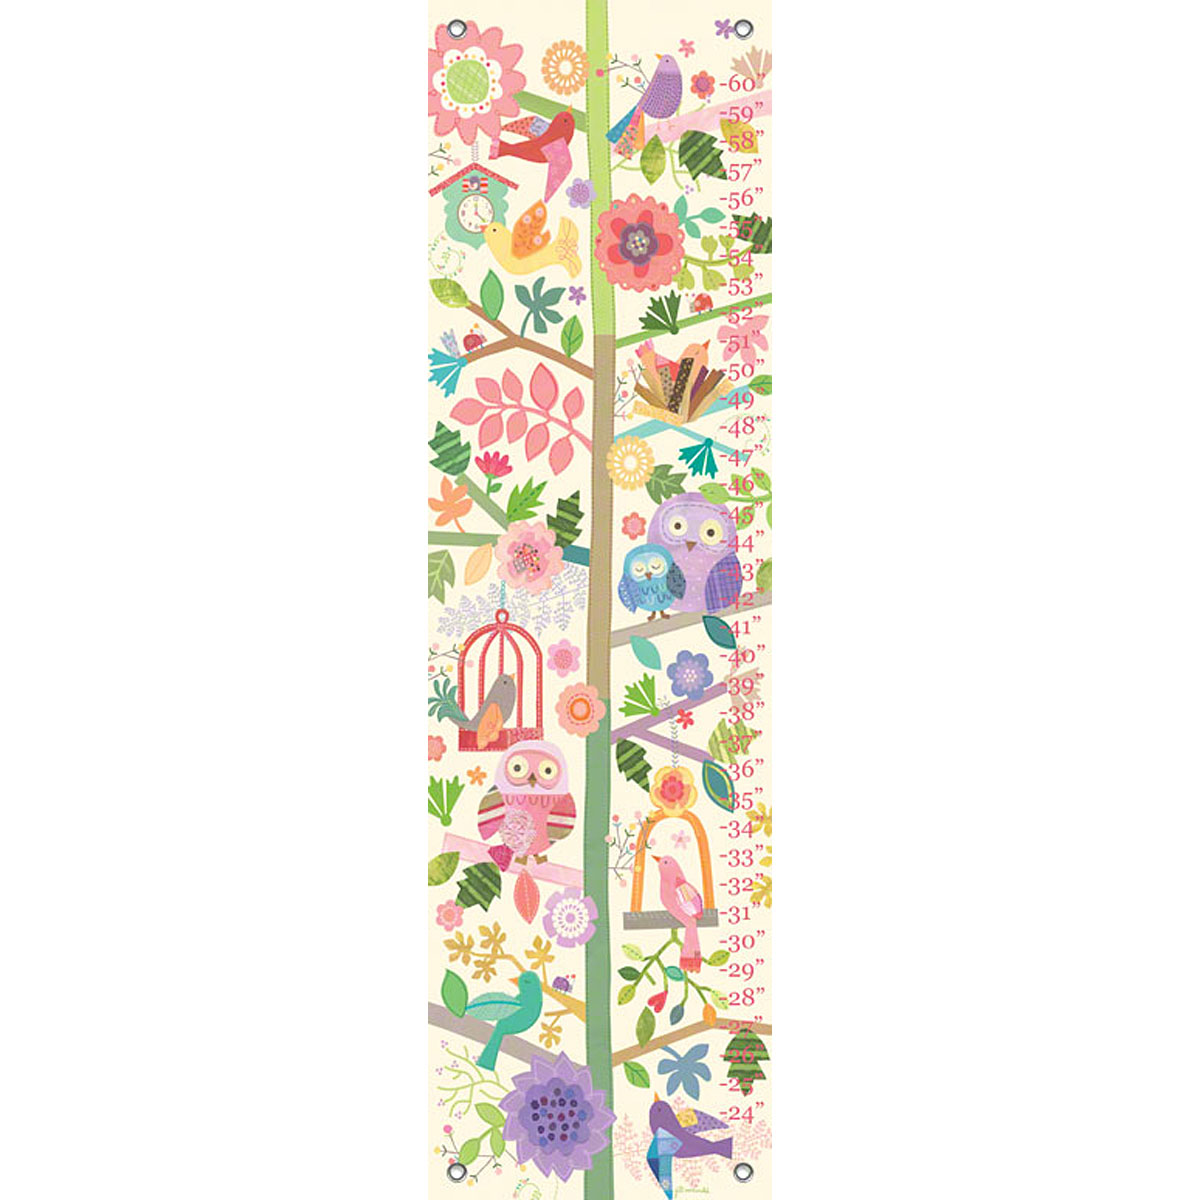 Oopsy daisy on the Road Growth Chart 12 by 42 Inches Fine Art for Kids PE2960